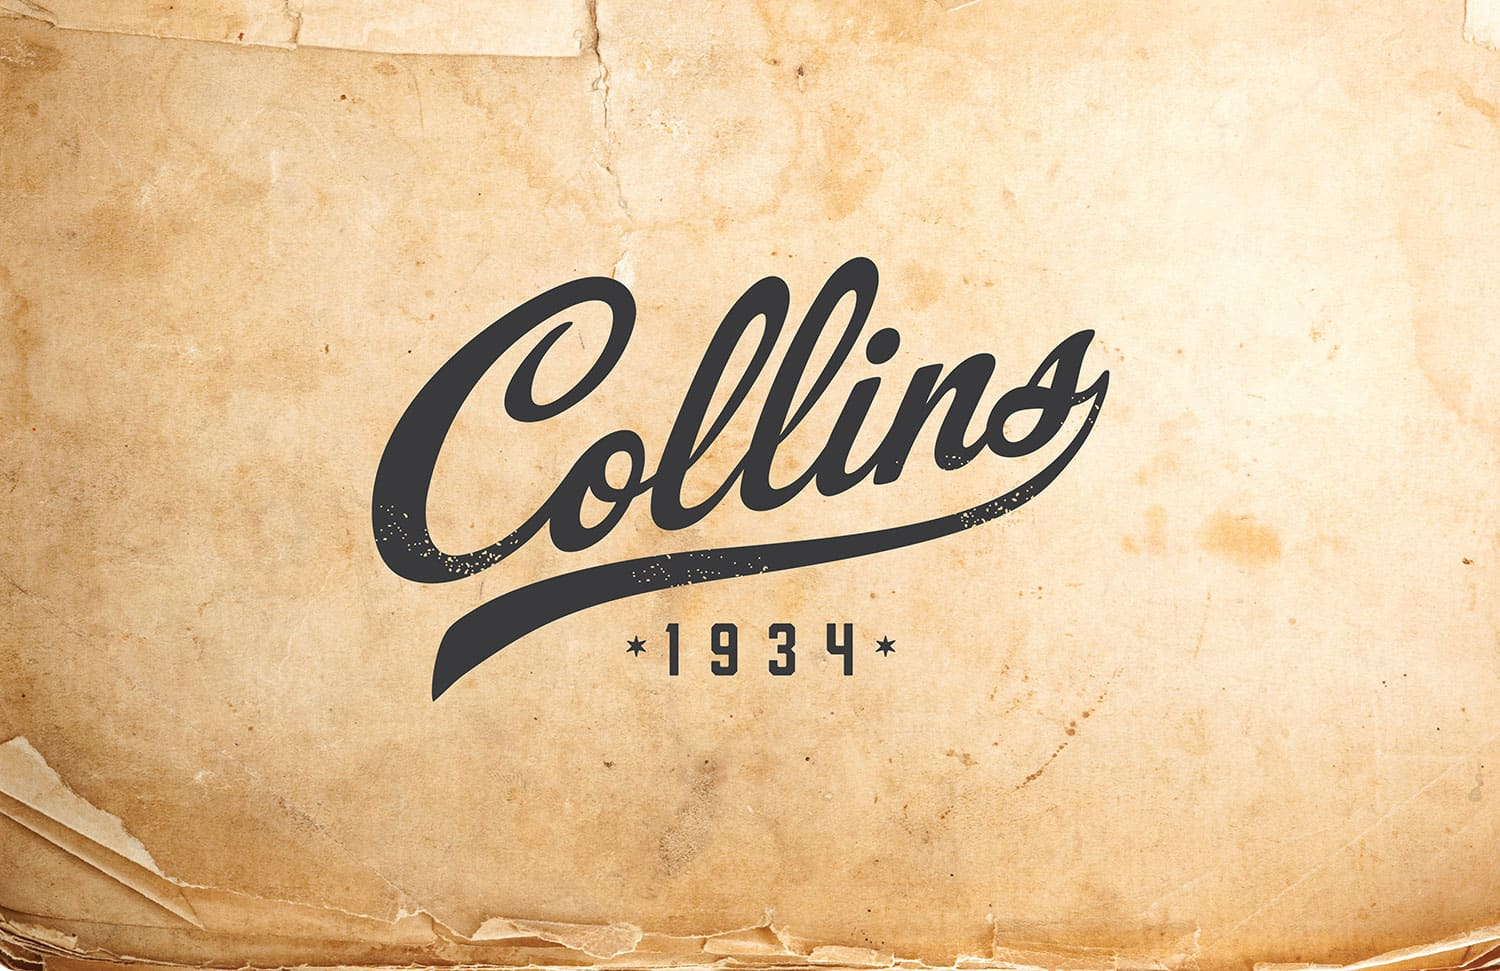 Collins / Brand ID & Packaging System Development